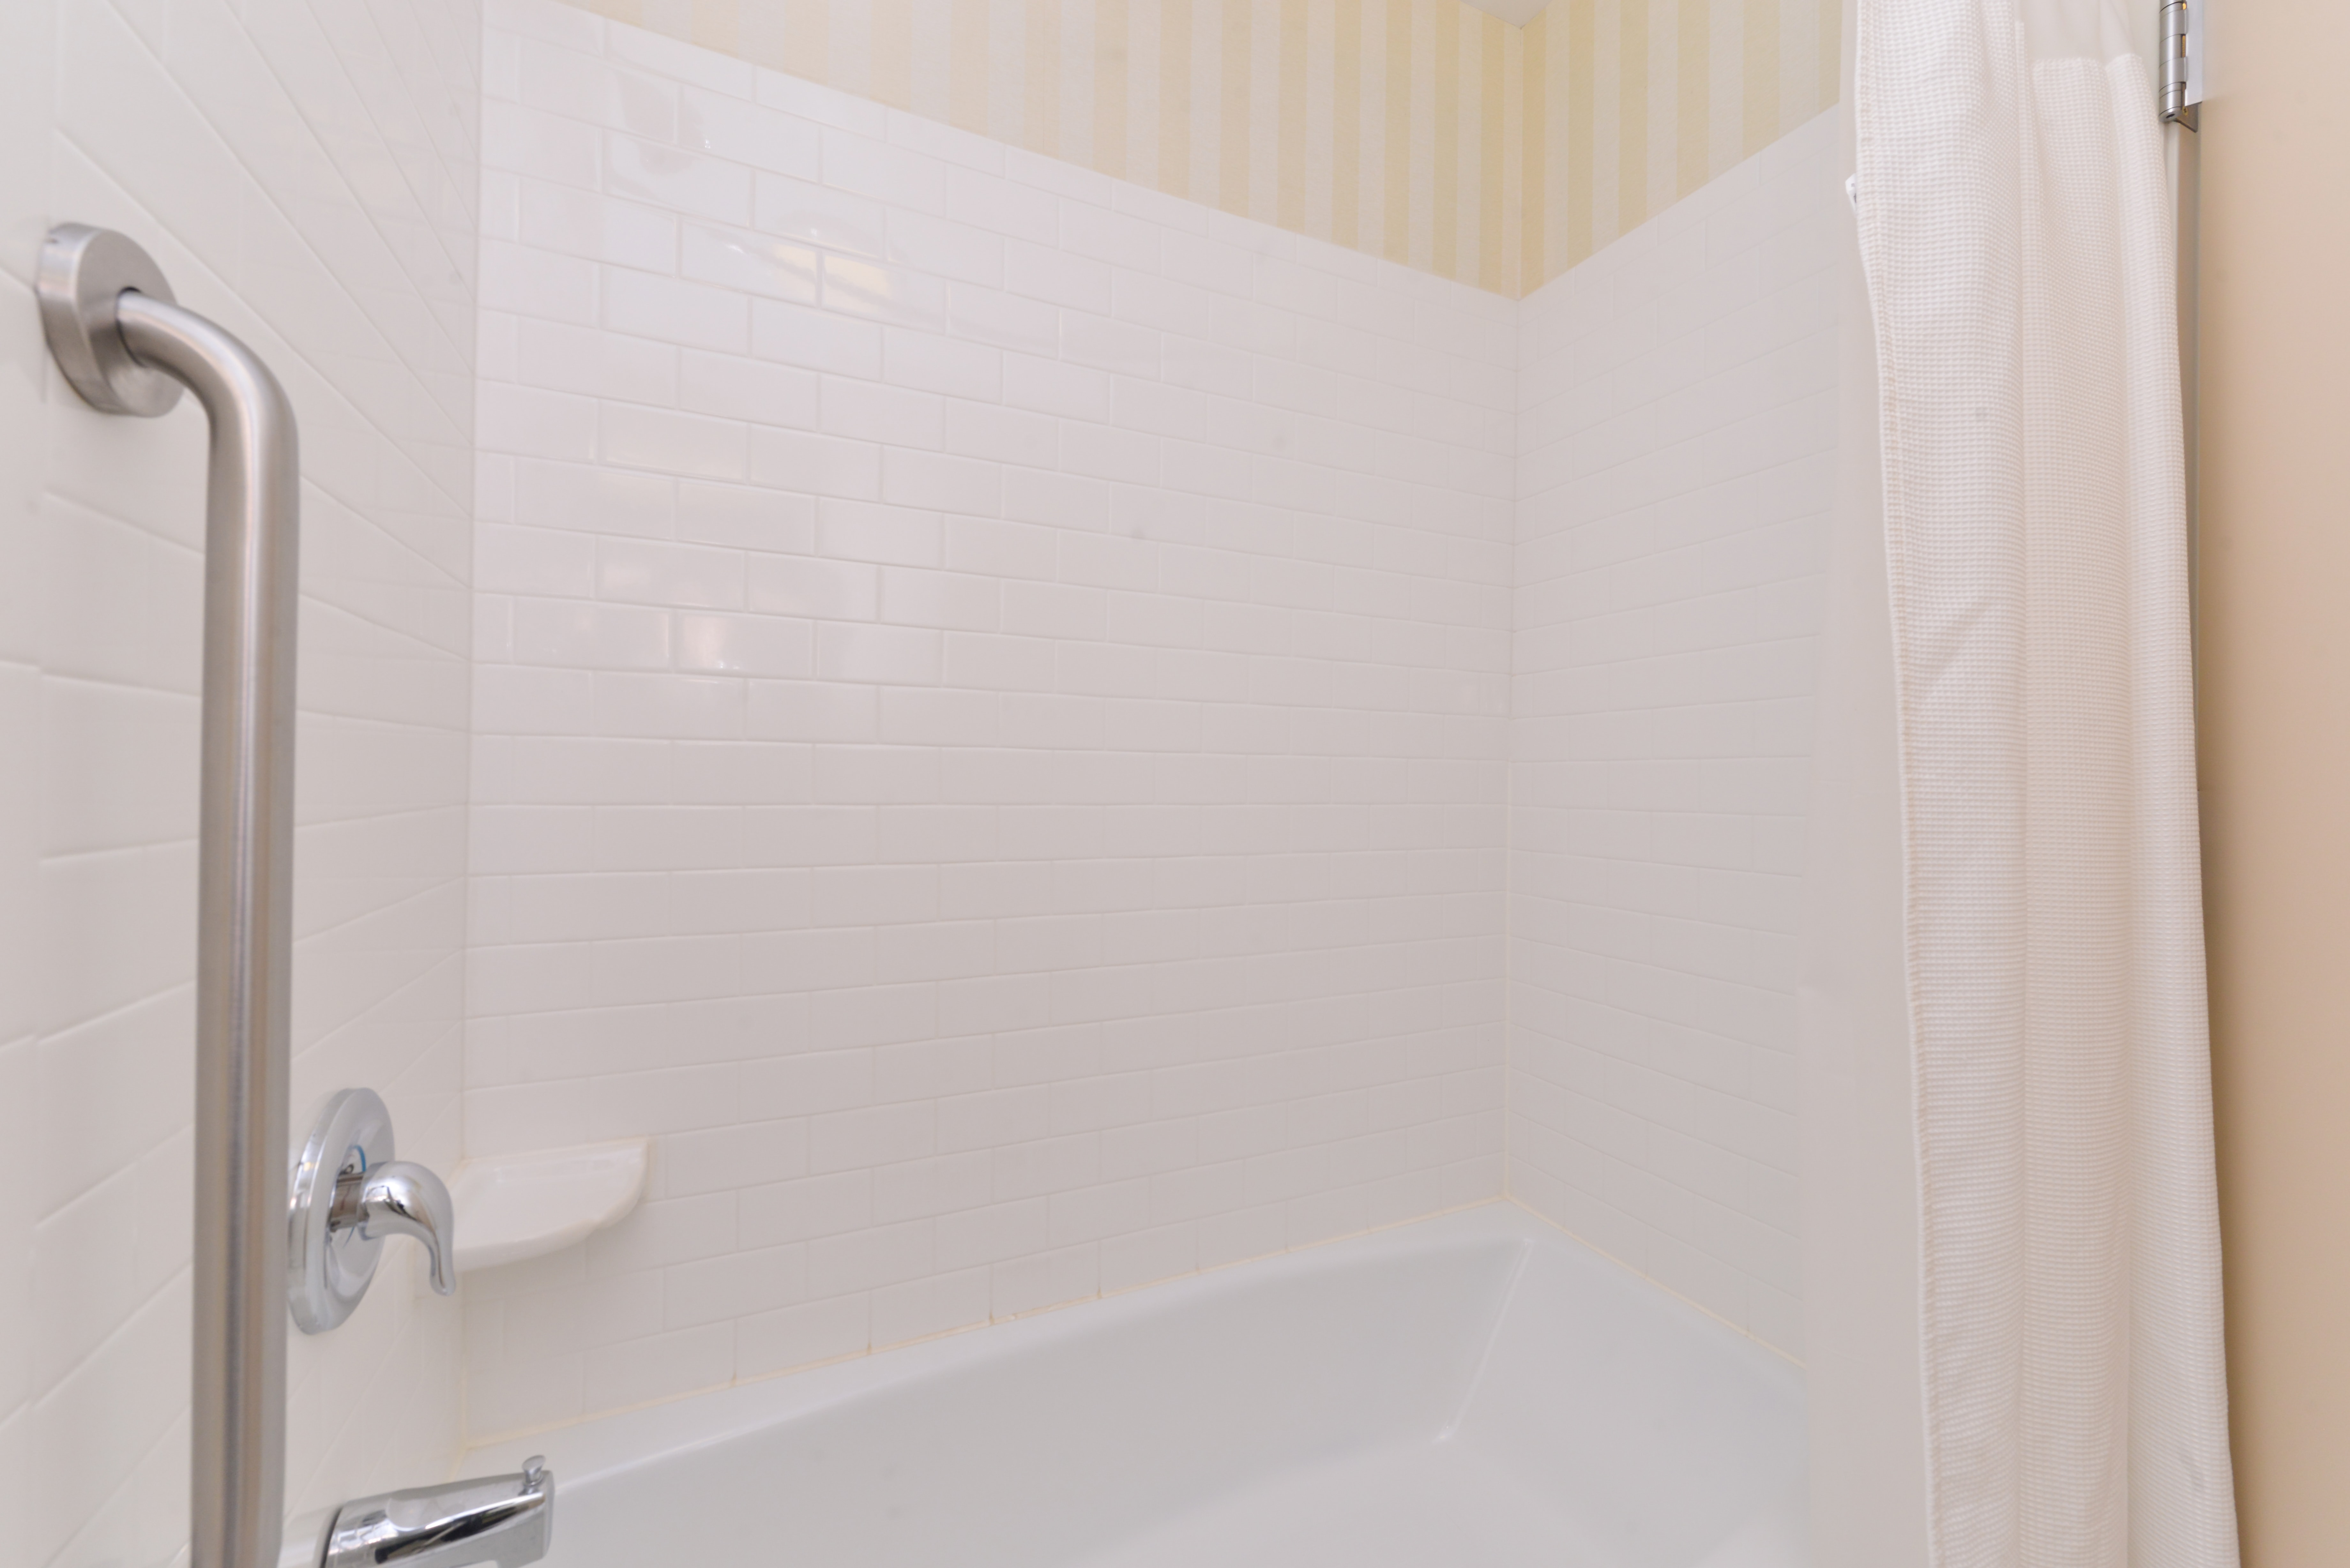 https://www.hotelsbyday.com/_data/default-hotel_image/3/15127/fis-cidcr-bathroom4.jpg